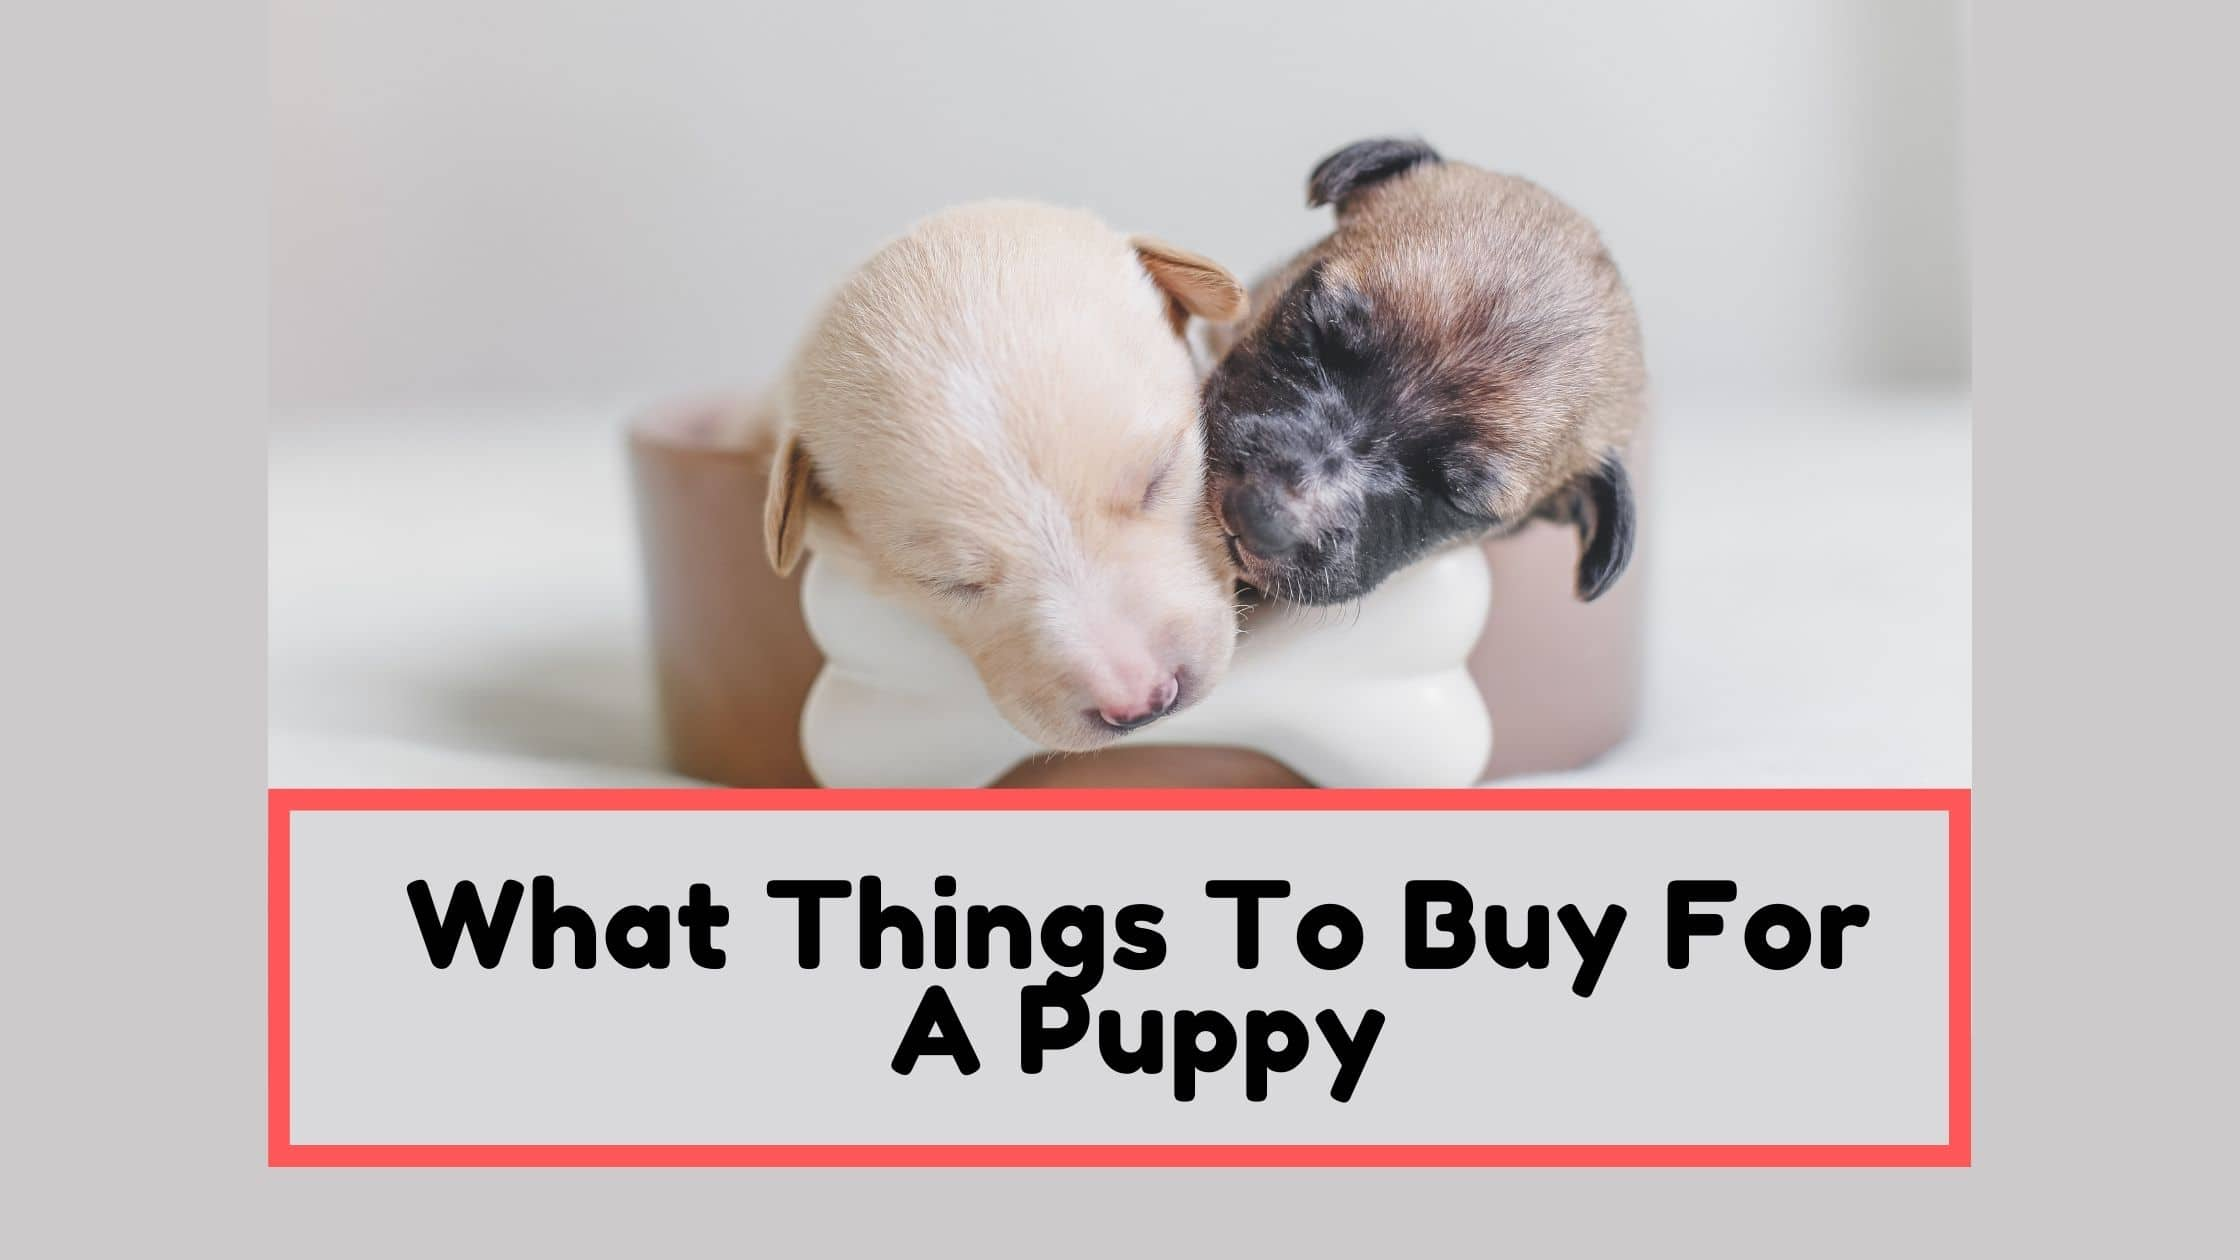 What Things To Buy For A Puppy